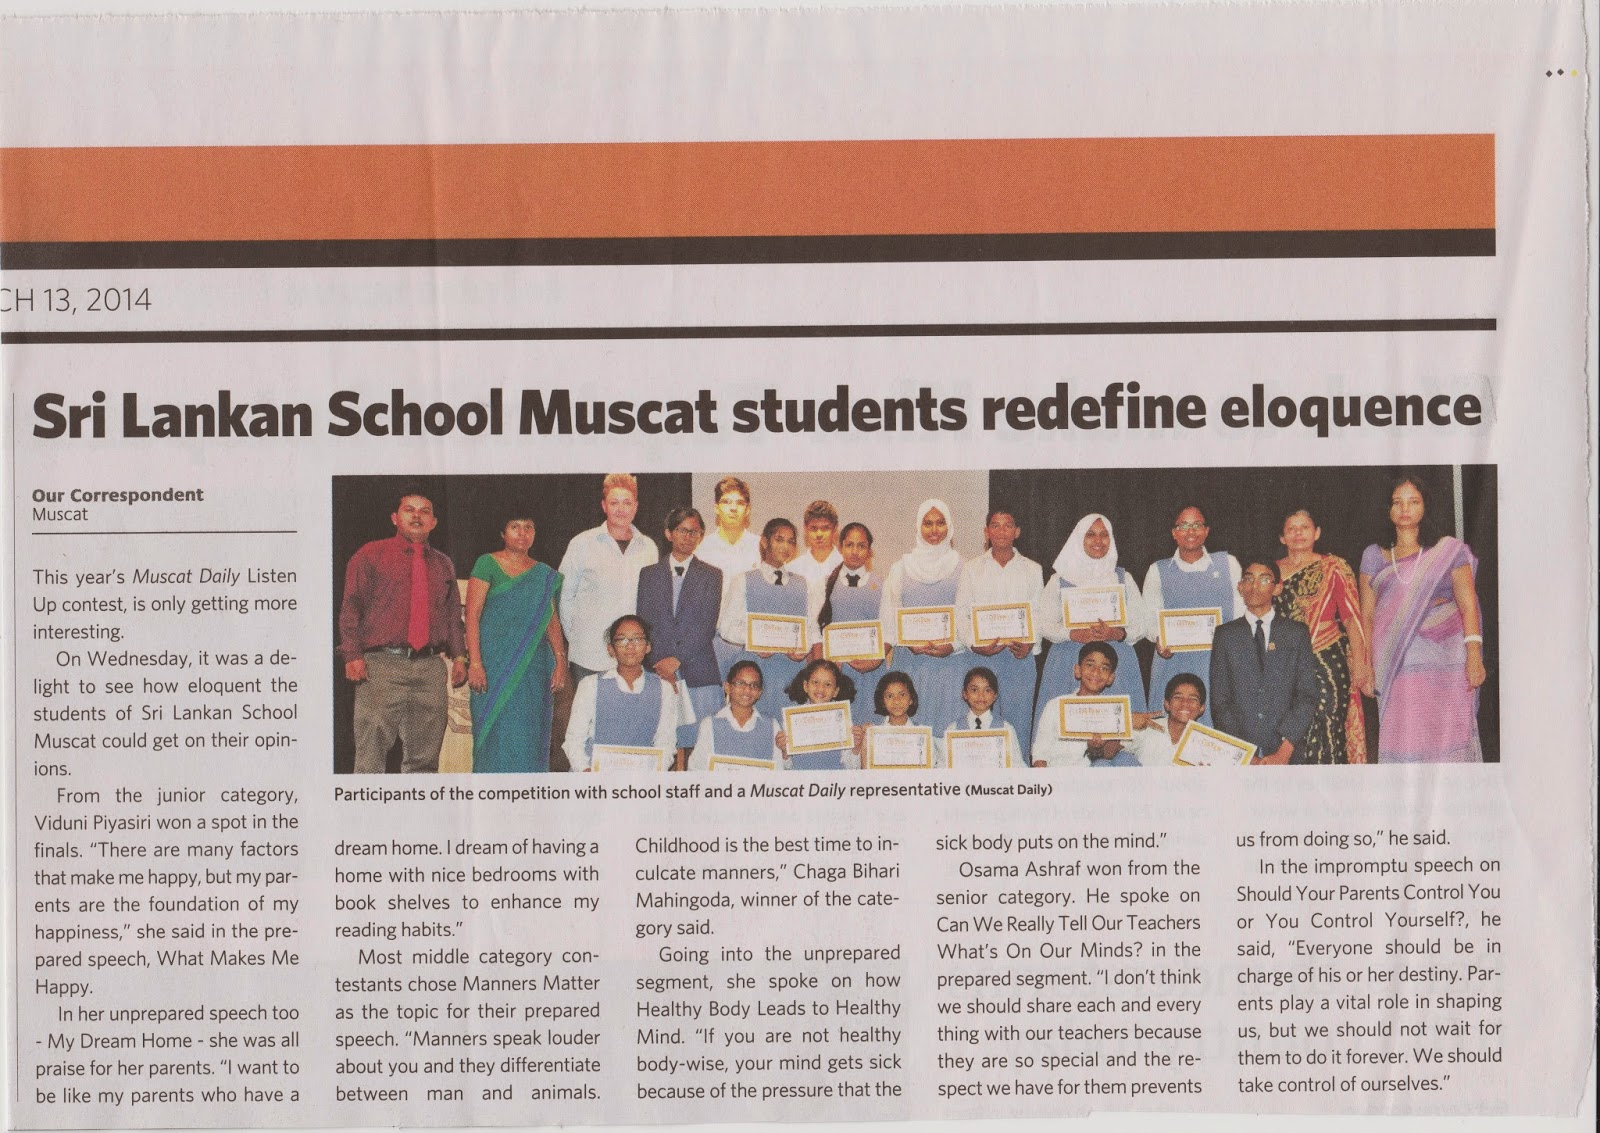 http://www.muscatdaily.com/Archive/Oman/Sri-Lankan-School-Muscat-students-redefine-eloquence-305k